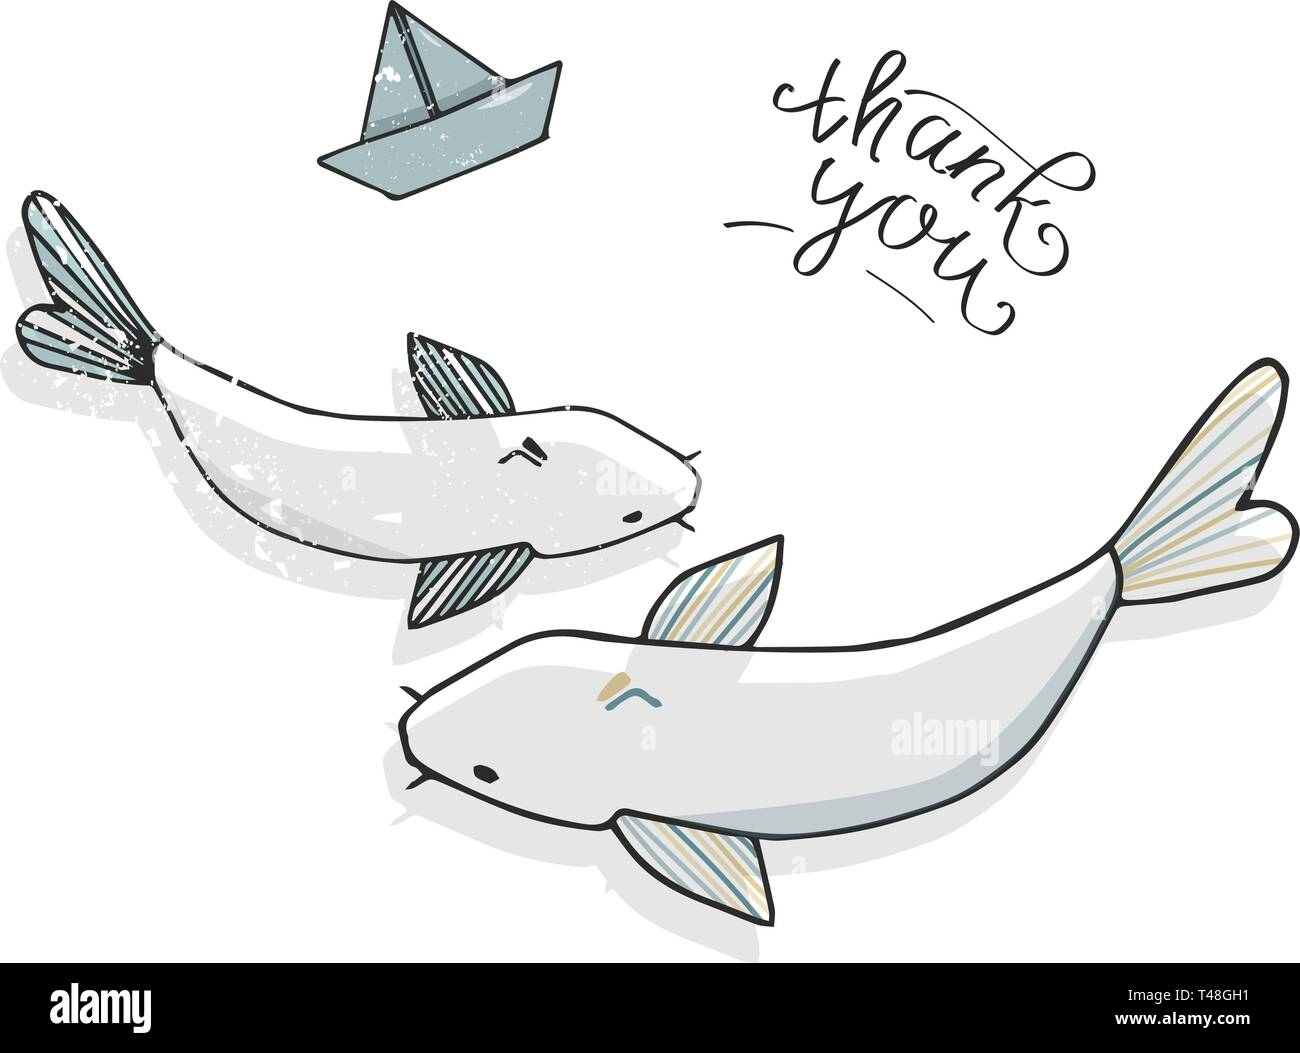 Vector fish catfish smile face funny shabby style vector color texture character drawing illustration white fish sea life drawing clip art river logo  - Stock Image